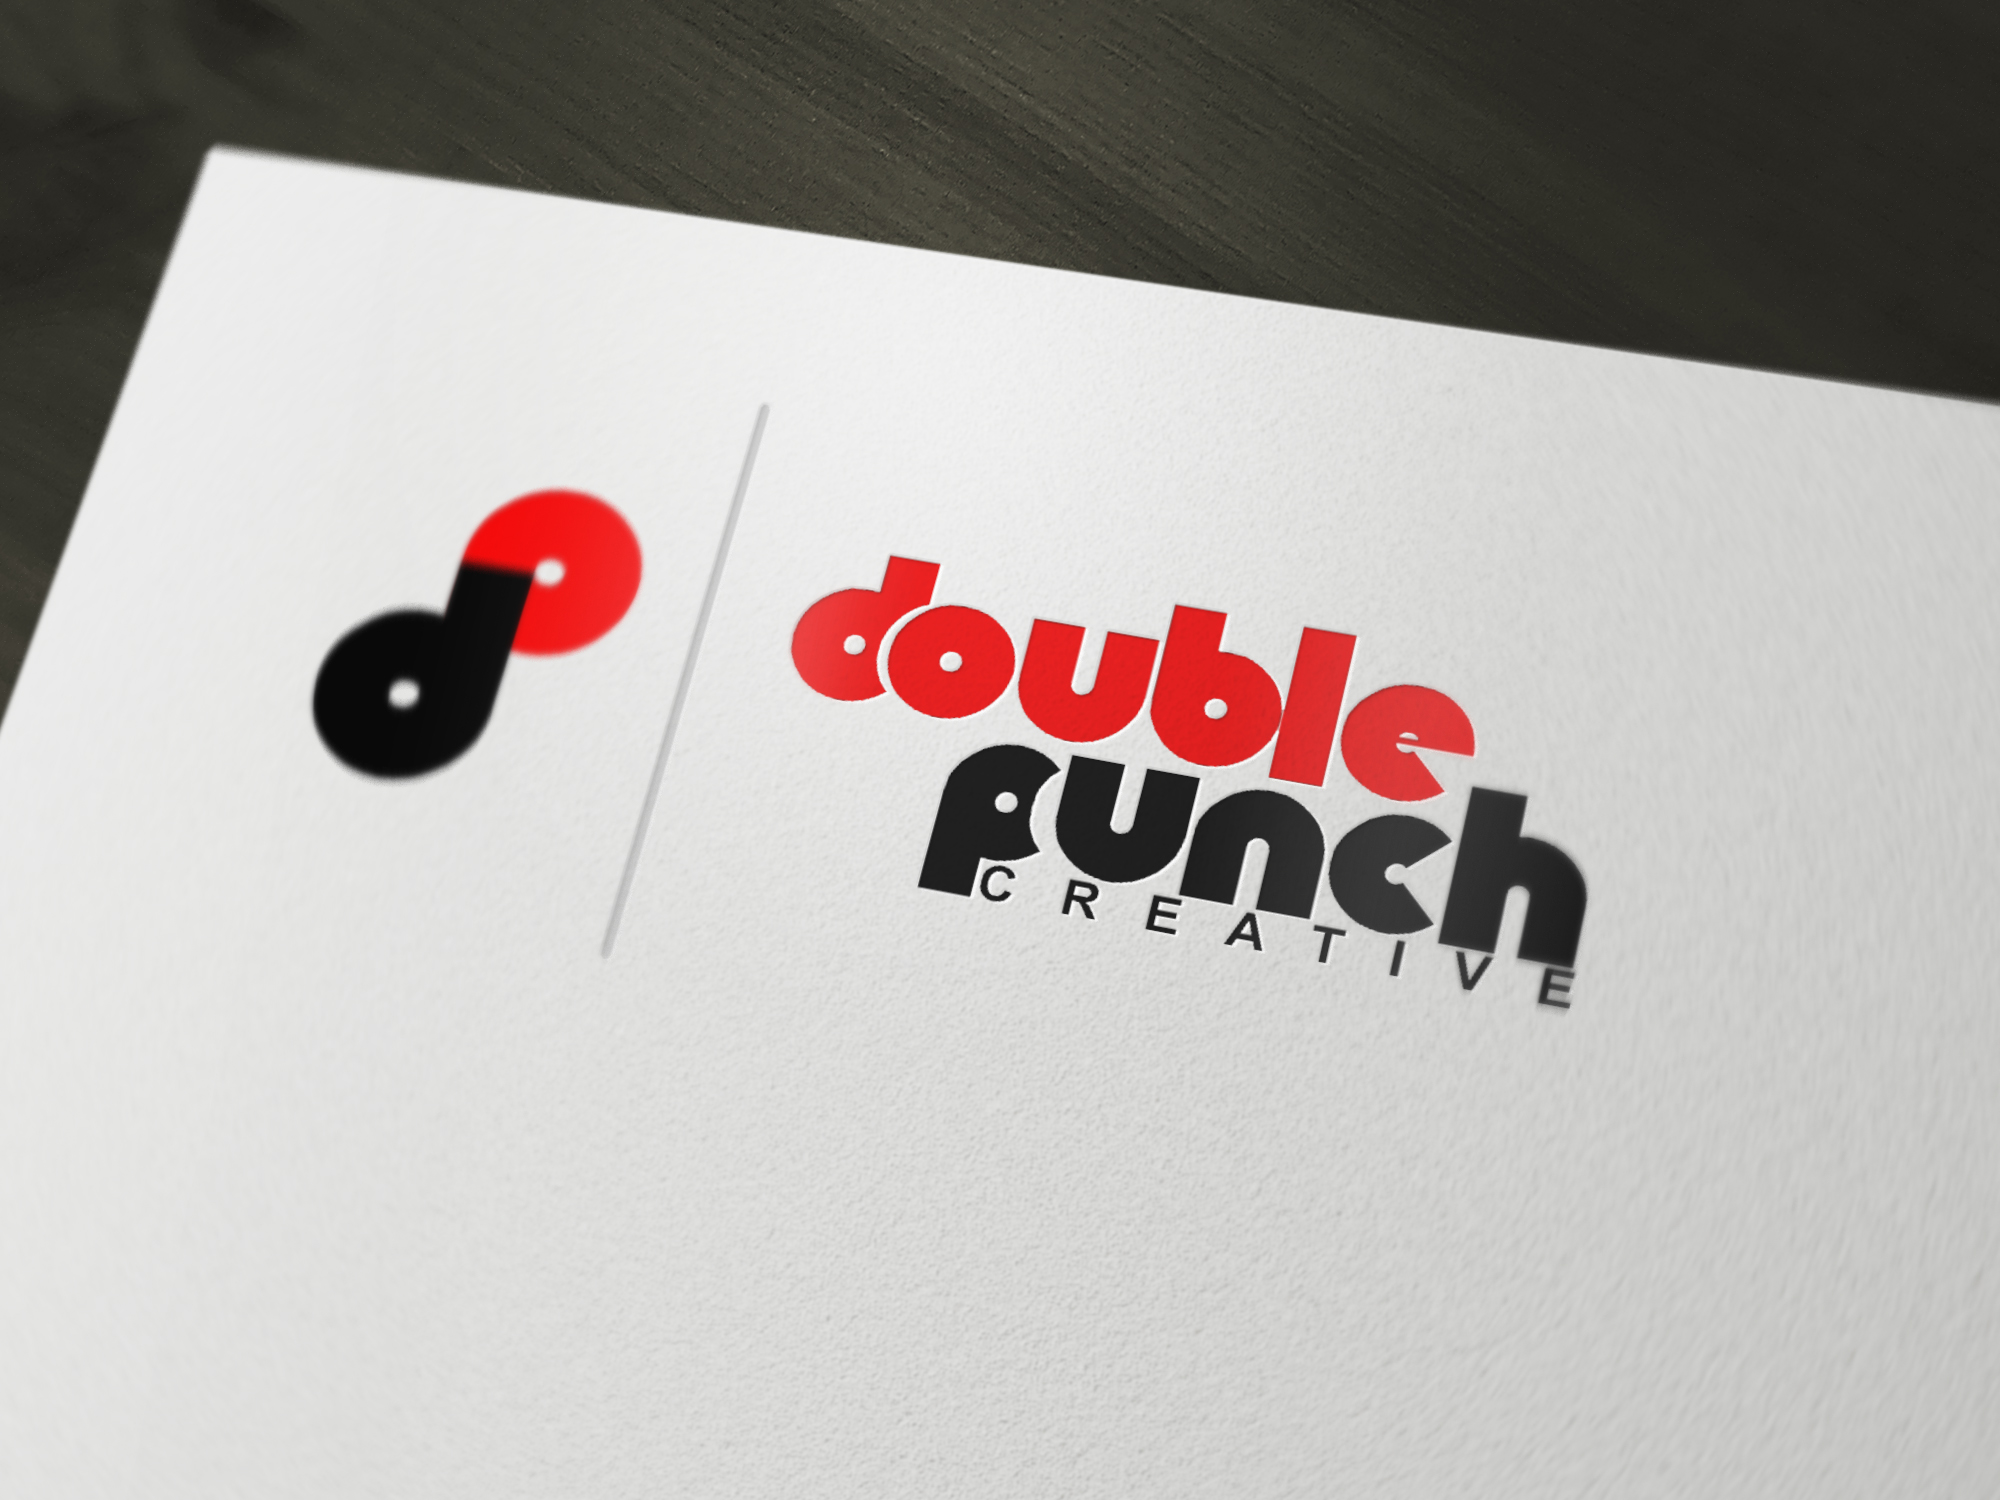 Logo Design by Private User - Entry No. 183 in the Logo Design Contest Unique Logo Design Wanted for Double Punch Creative.